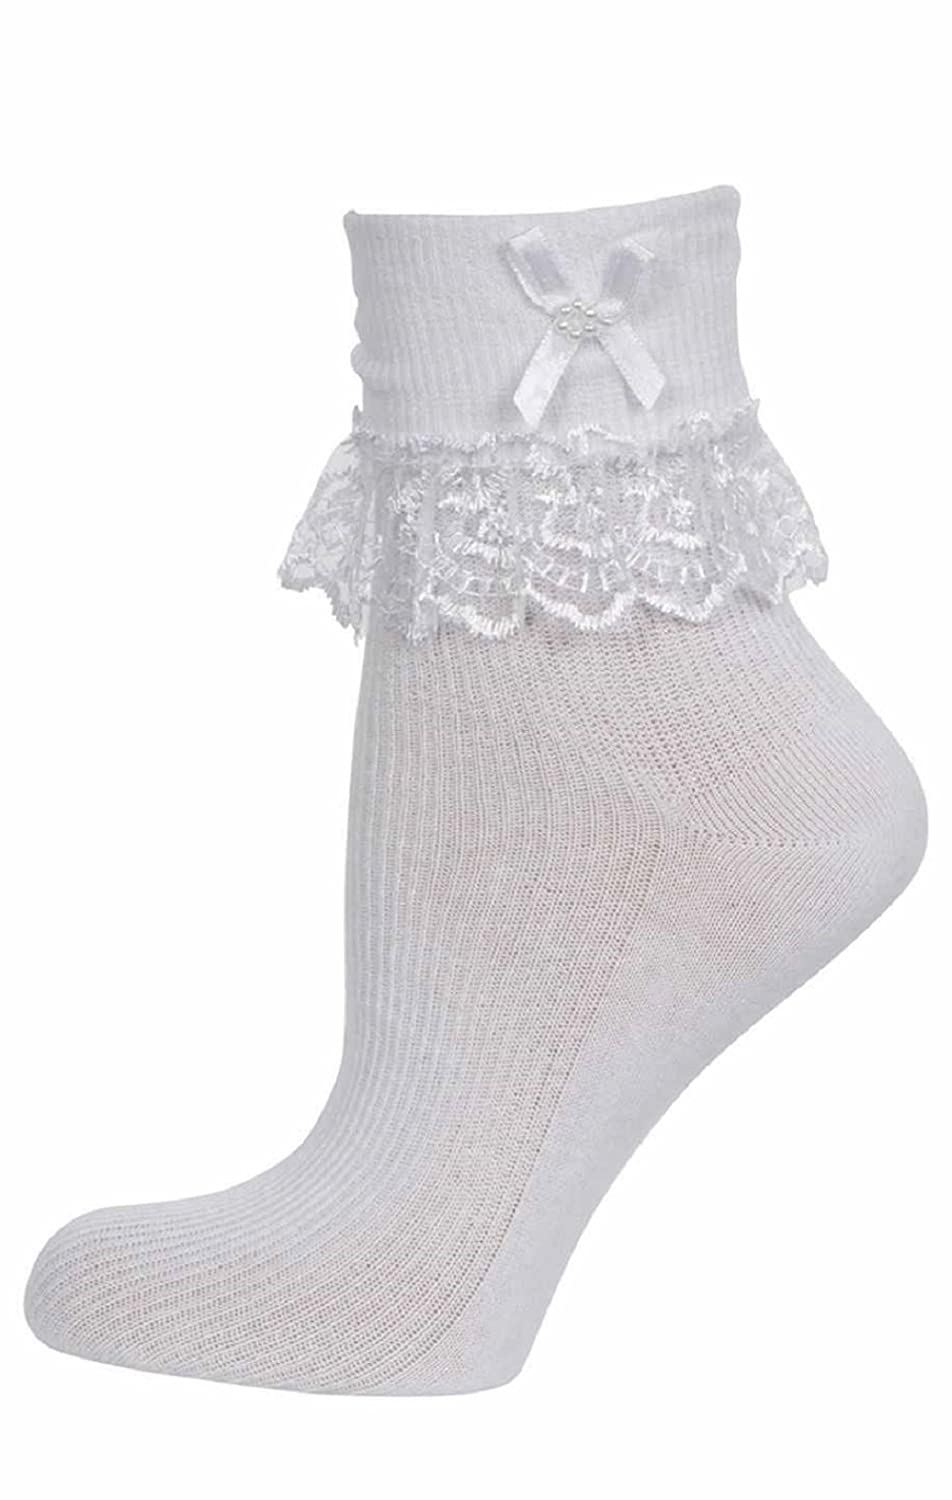 Girl Ladies Cream Lace Frilly Special Occasion Party Socks UK 12.5-3.5//Eur 31-36